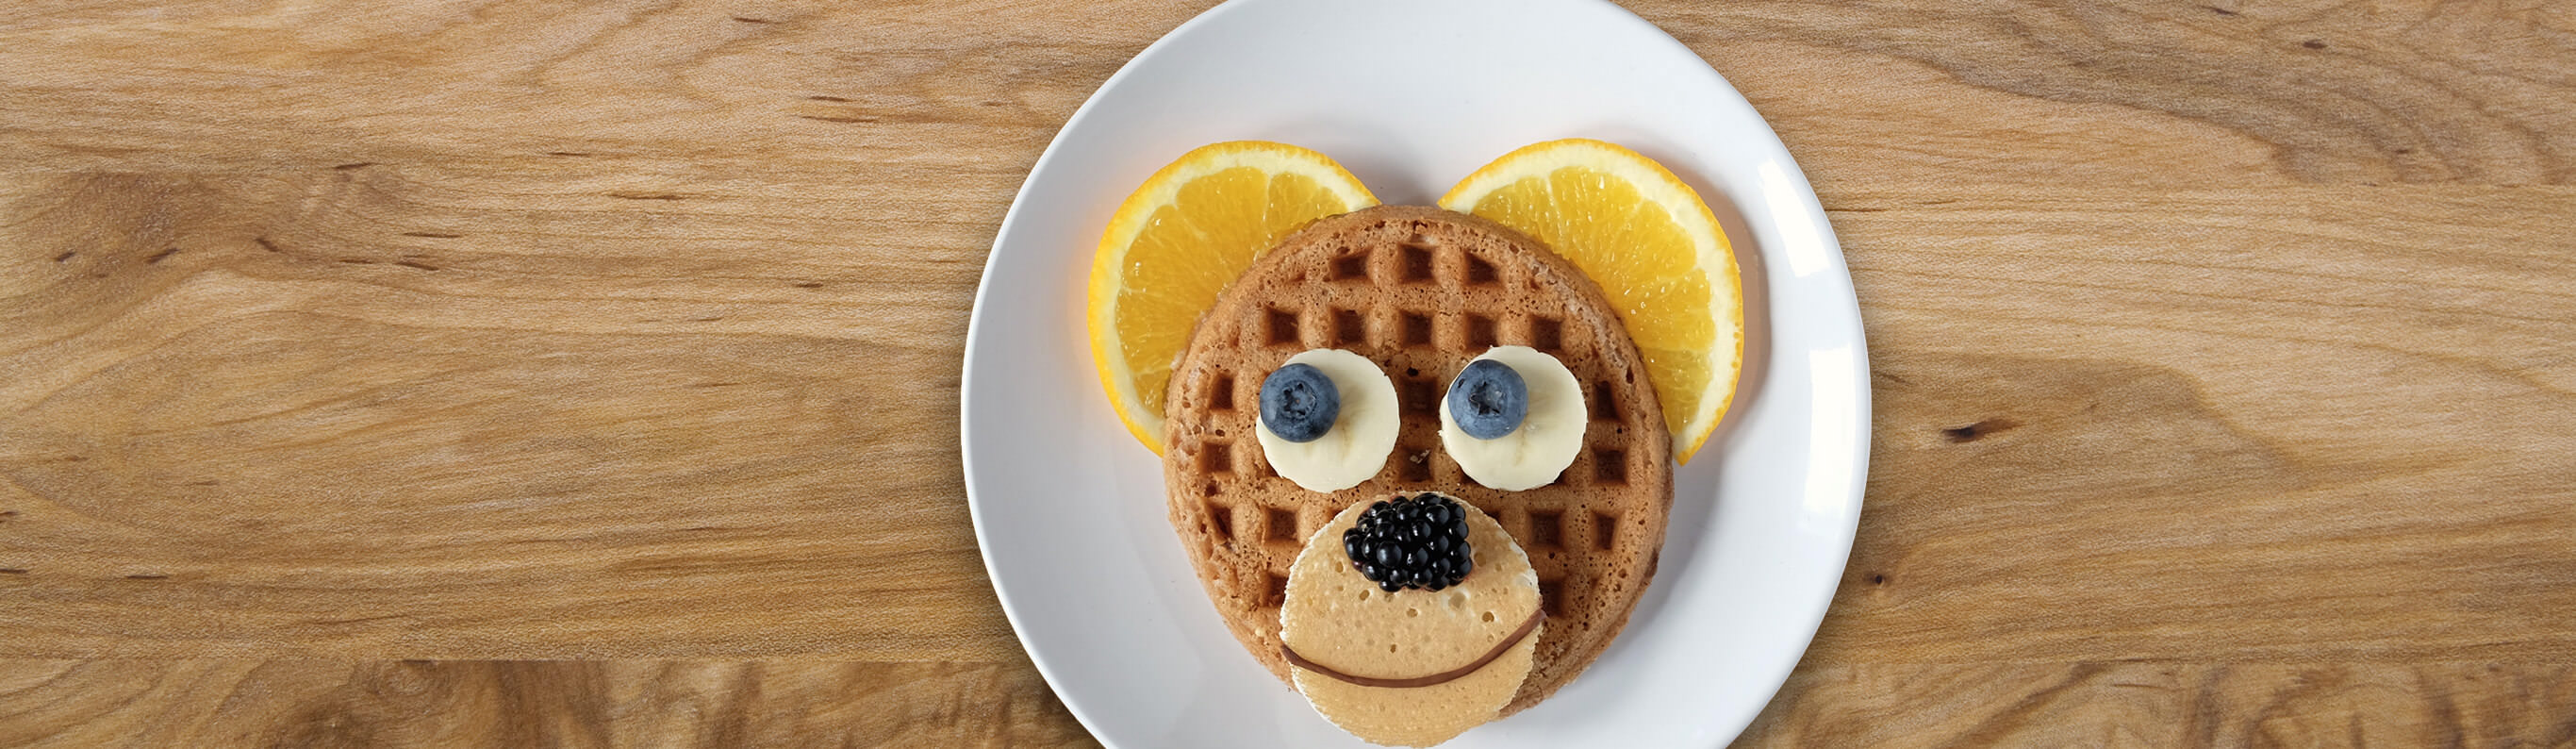 Bear Face Waffles